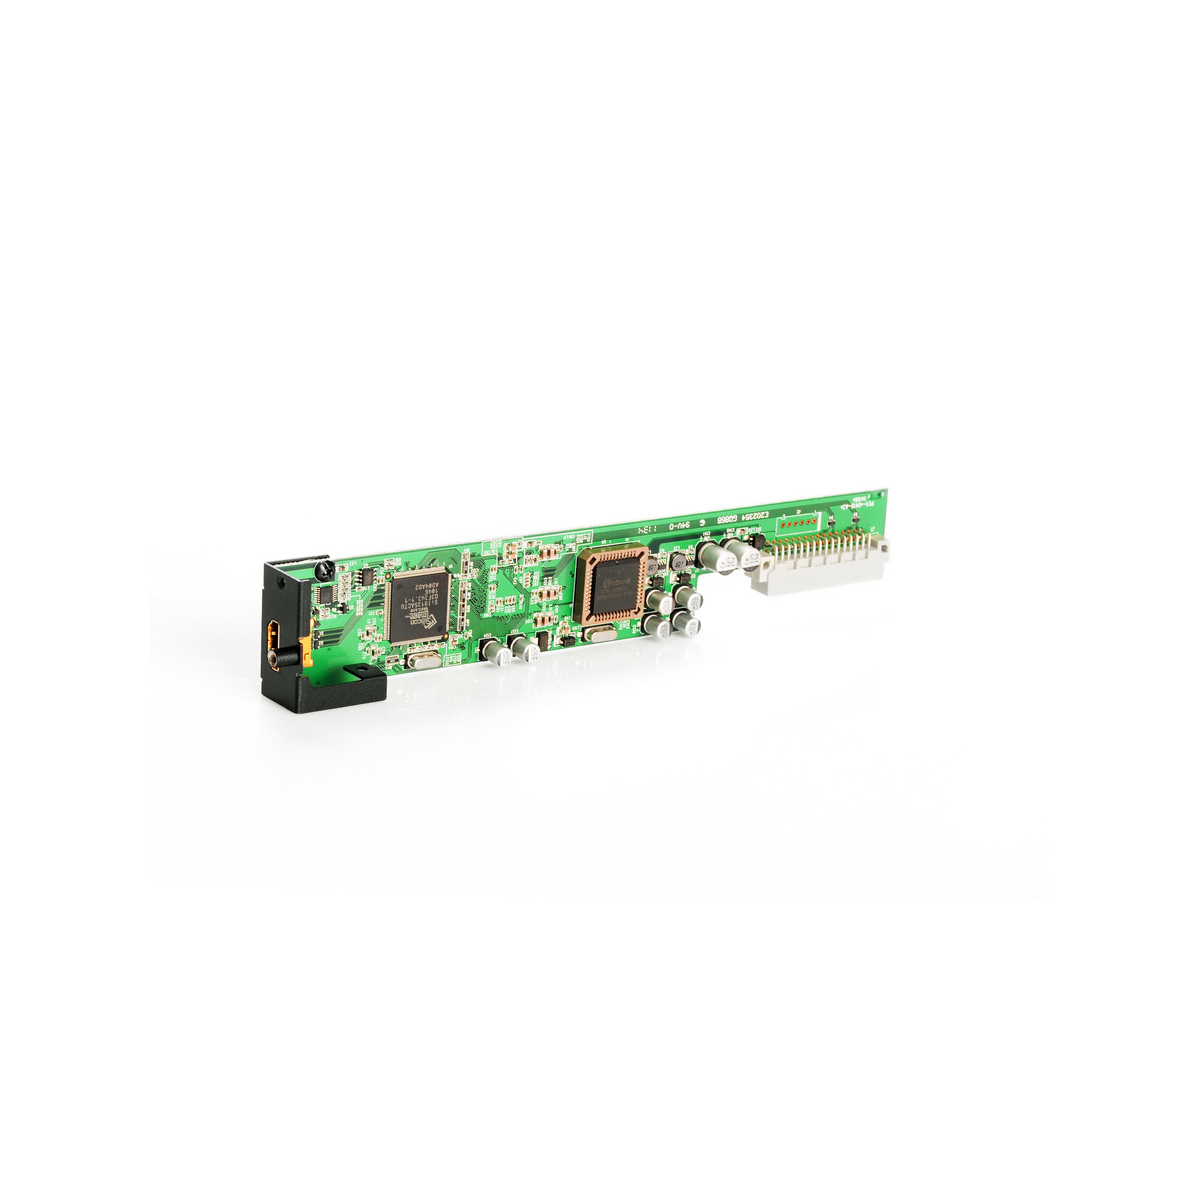 Zigen MODULAR (HDMI) IN CARD HX-88 I/O-IN